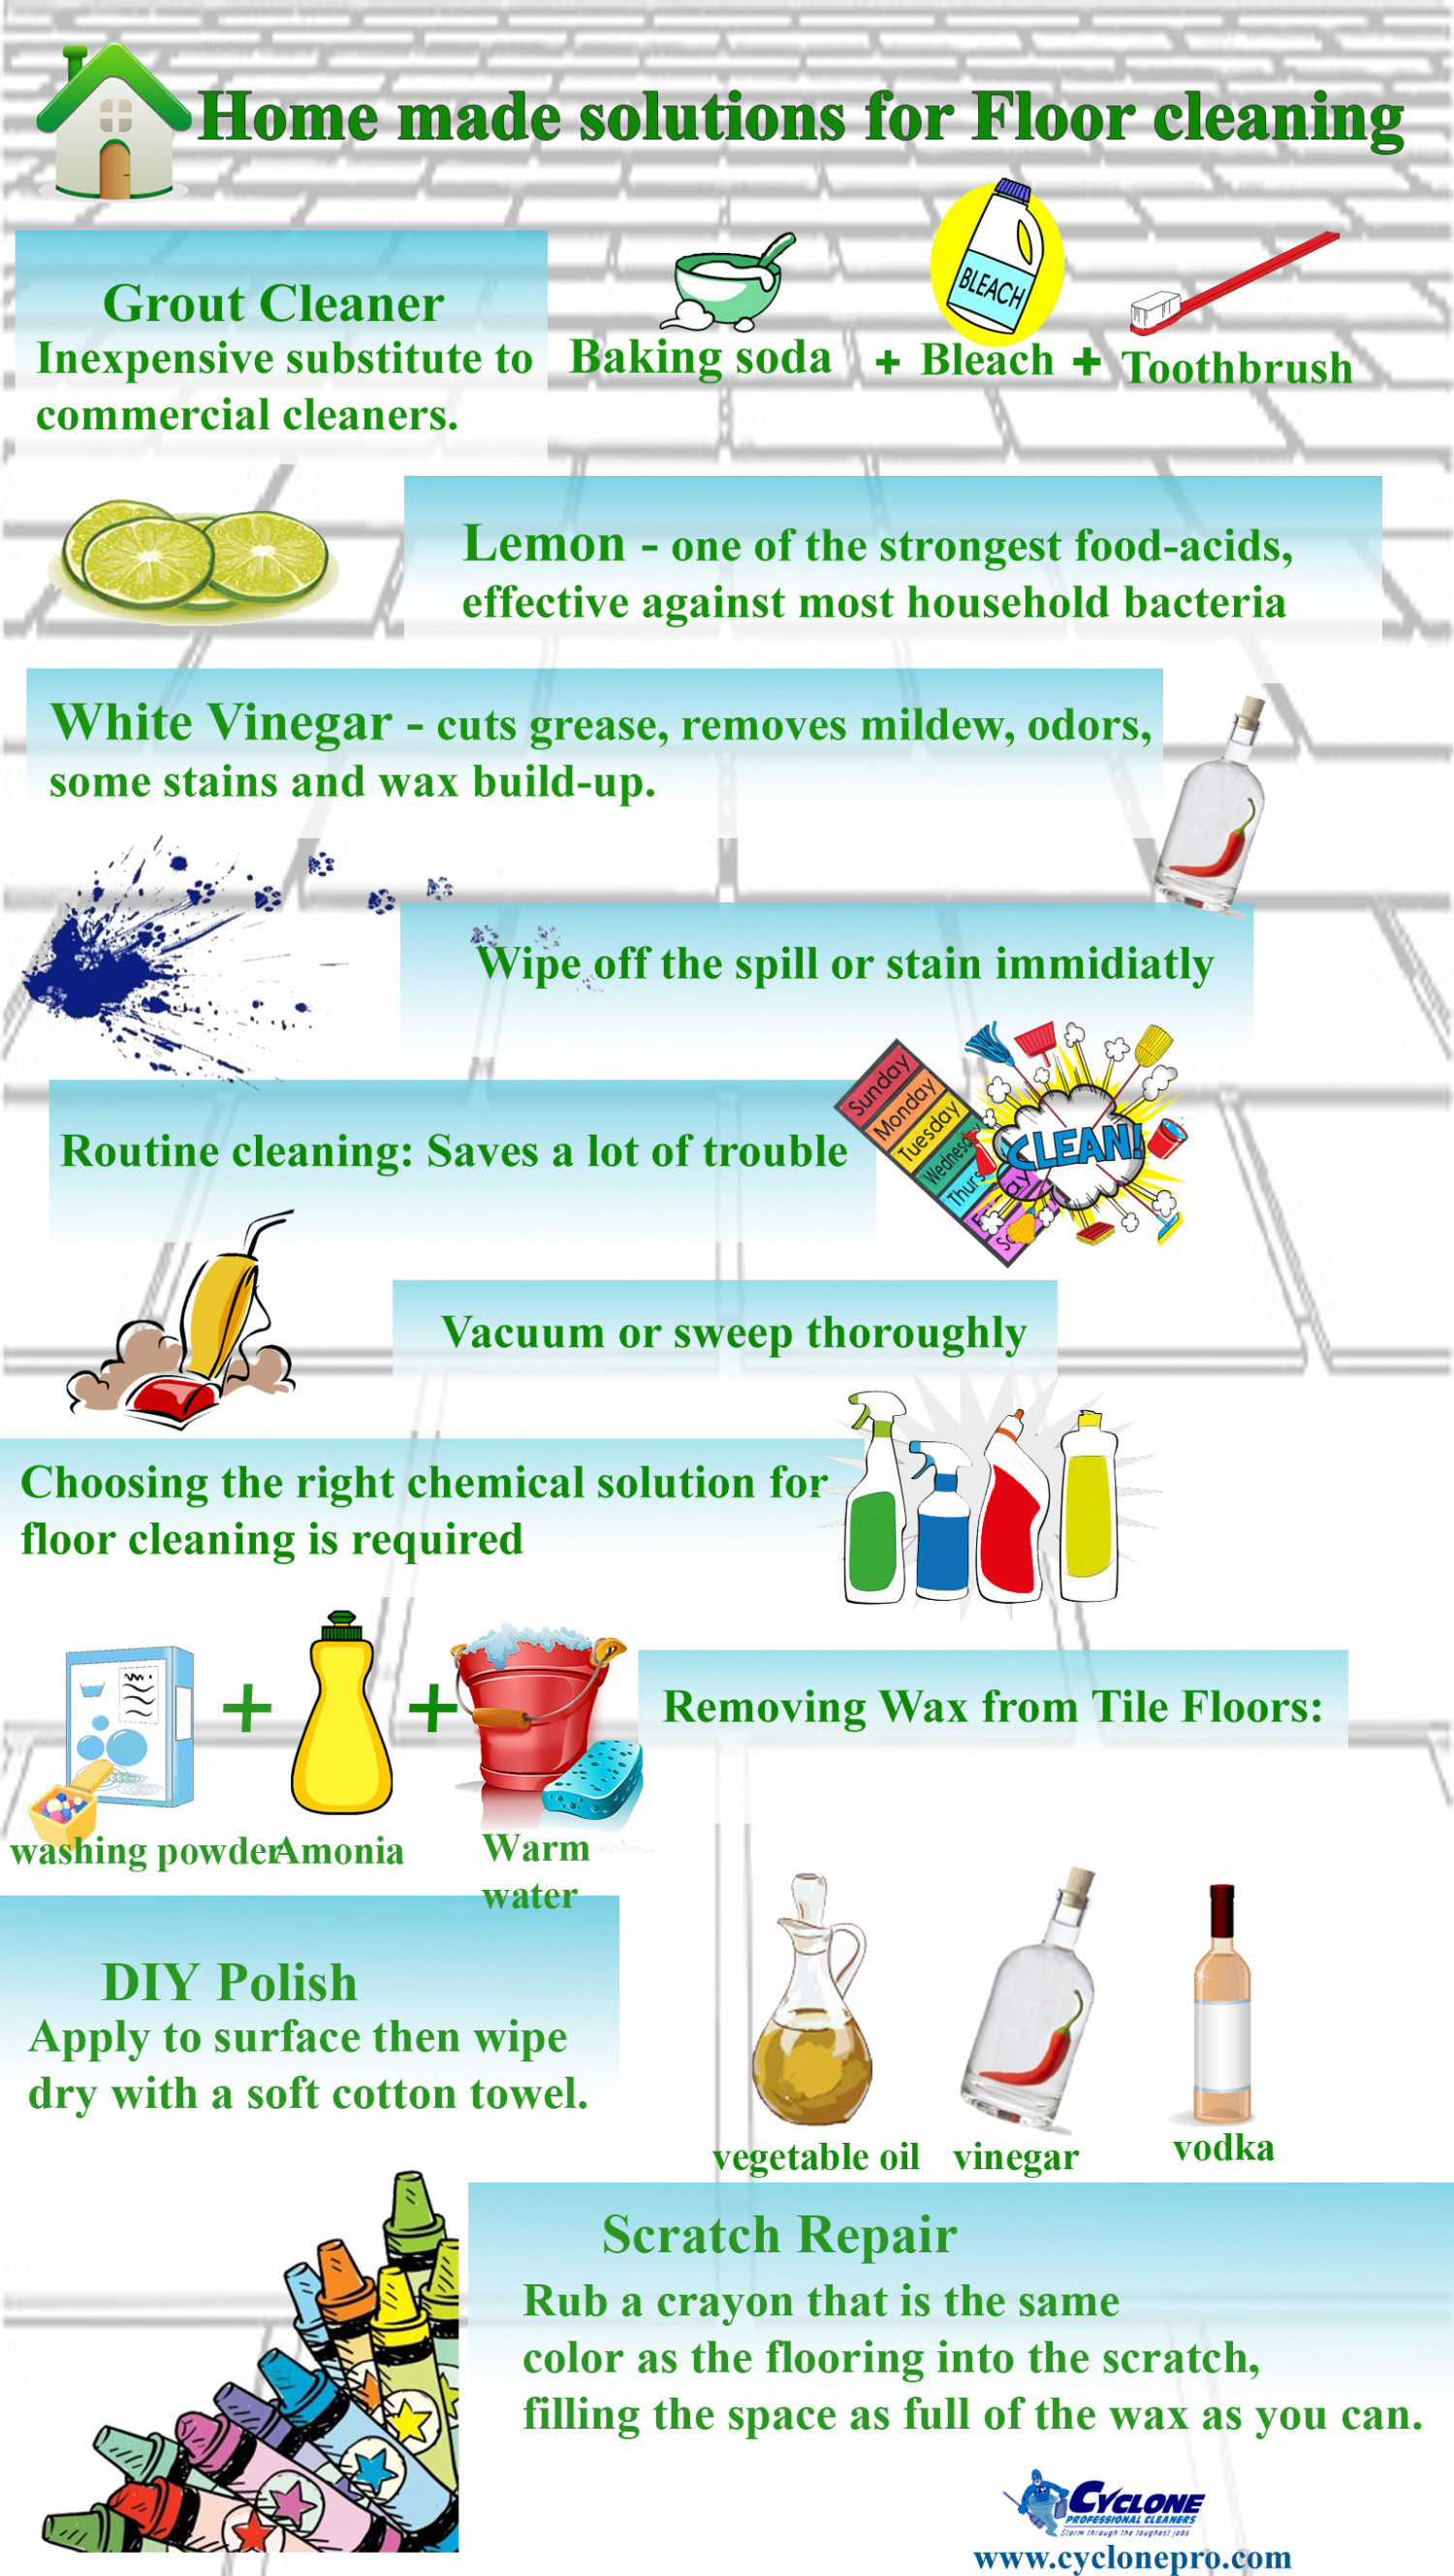 . Home made solutions for floor cleaning Infographic